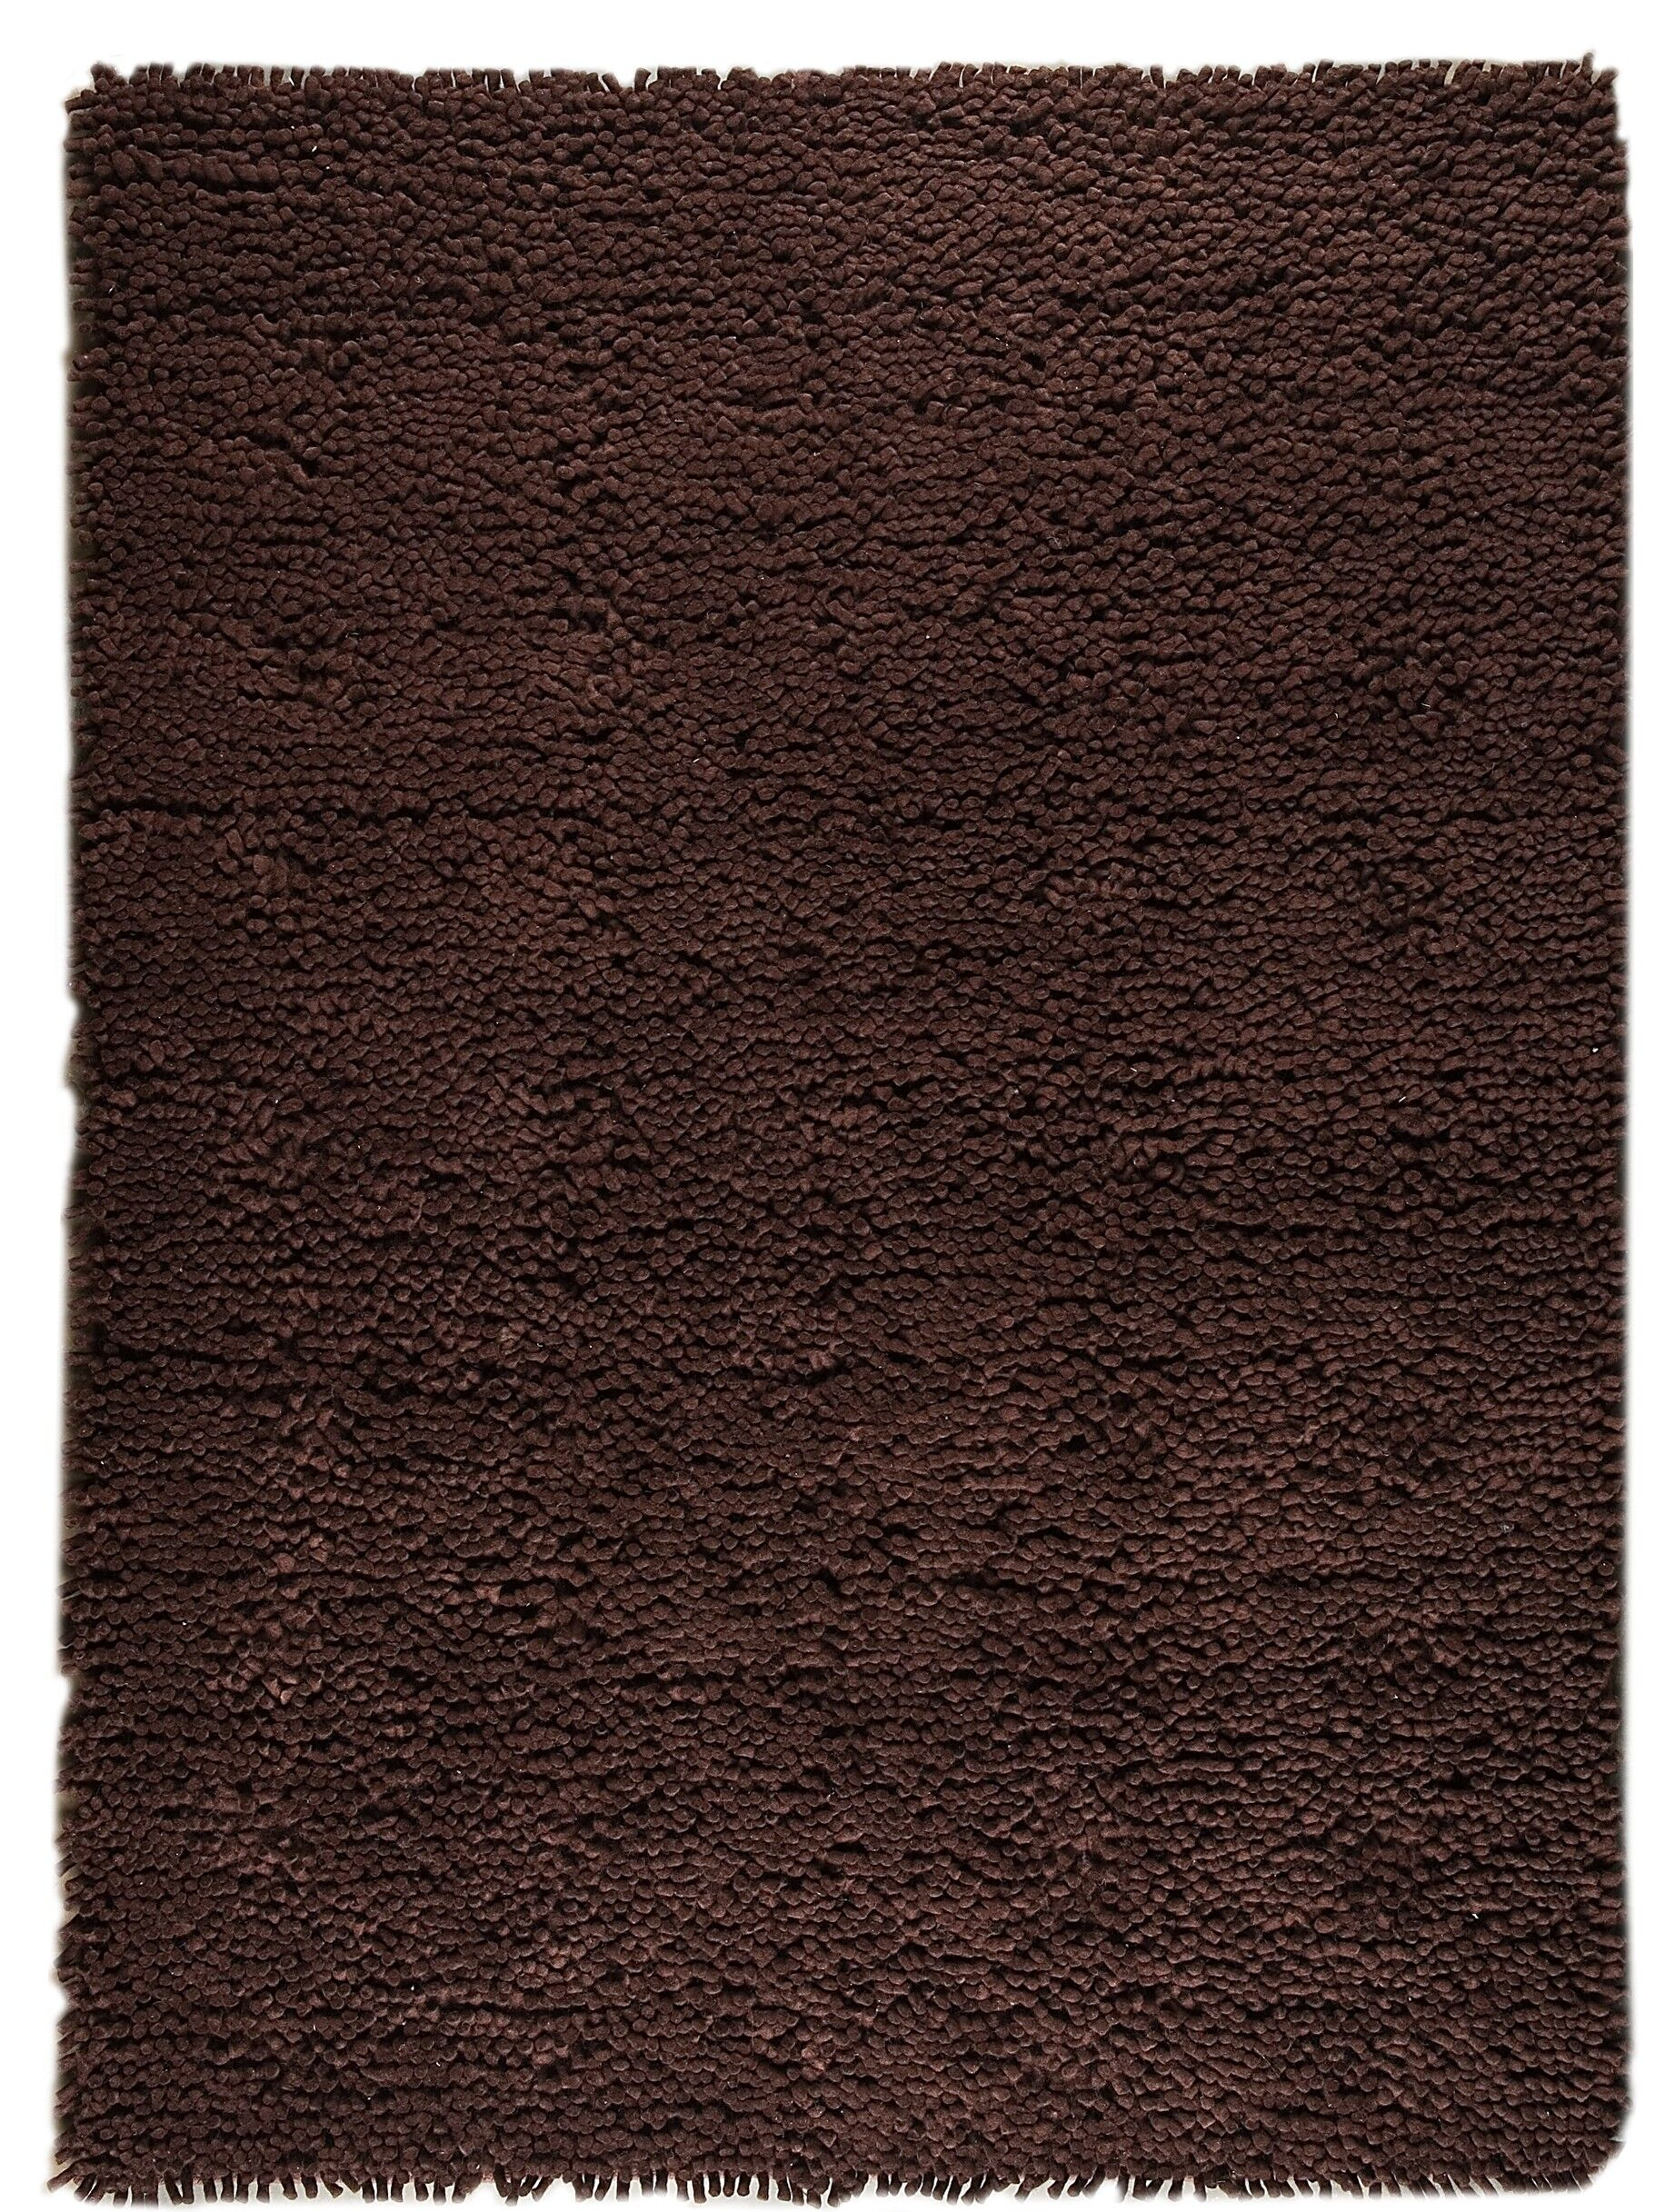 Harris Hand-Woven Brown Area Rug Rug Size: Rectangle 8'3